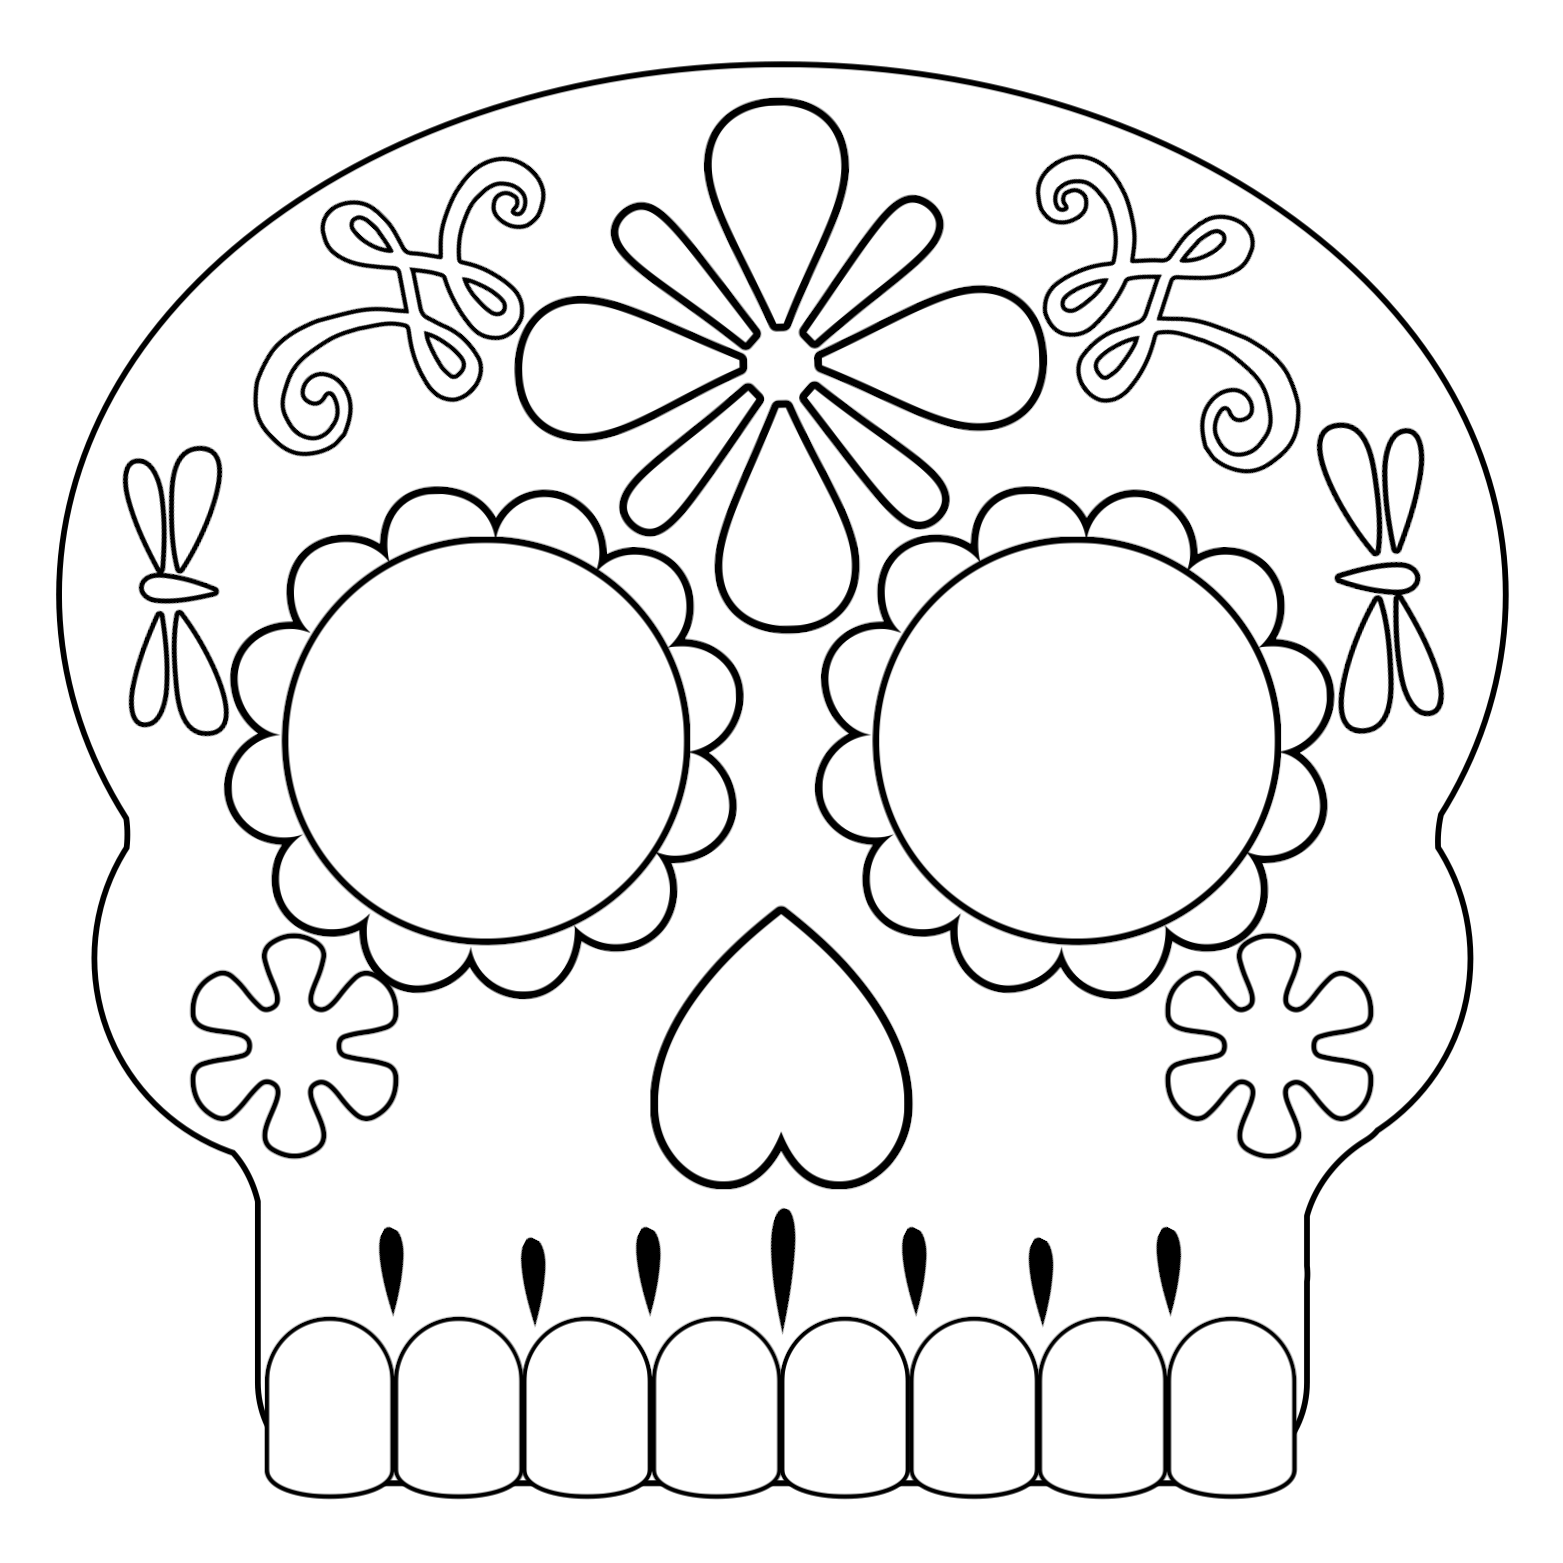 day of the dead template day of the dead masks sugar skulls free printable paper template the dead day of